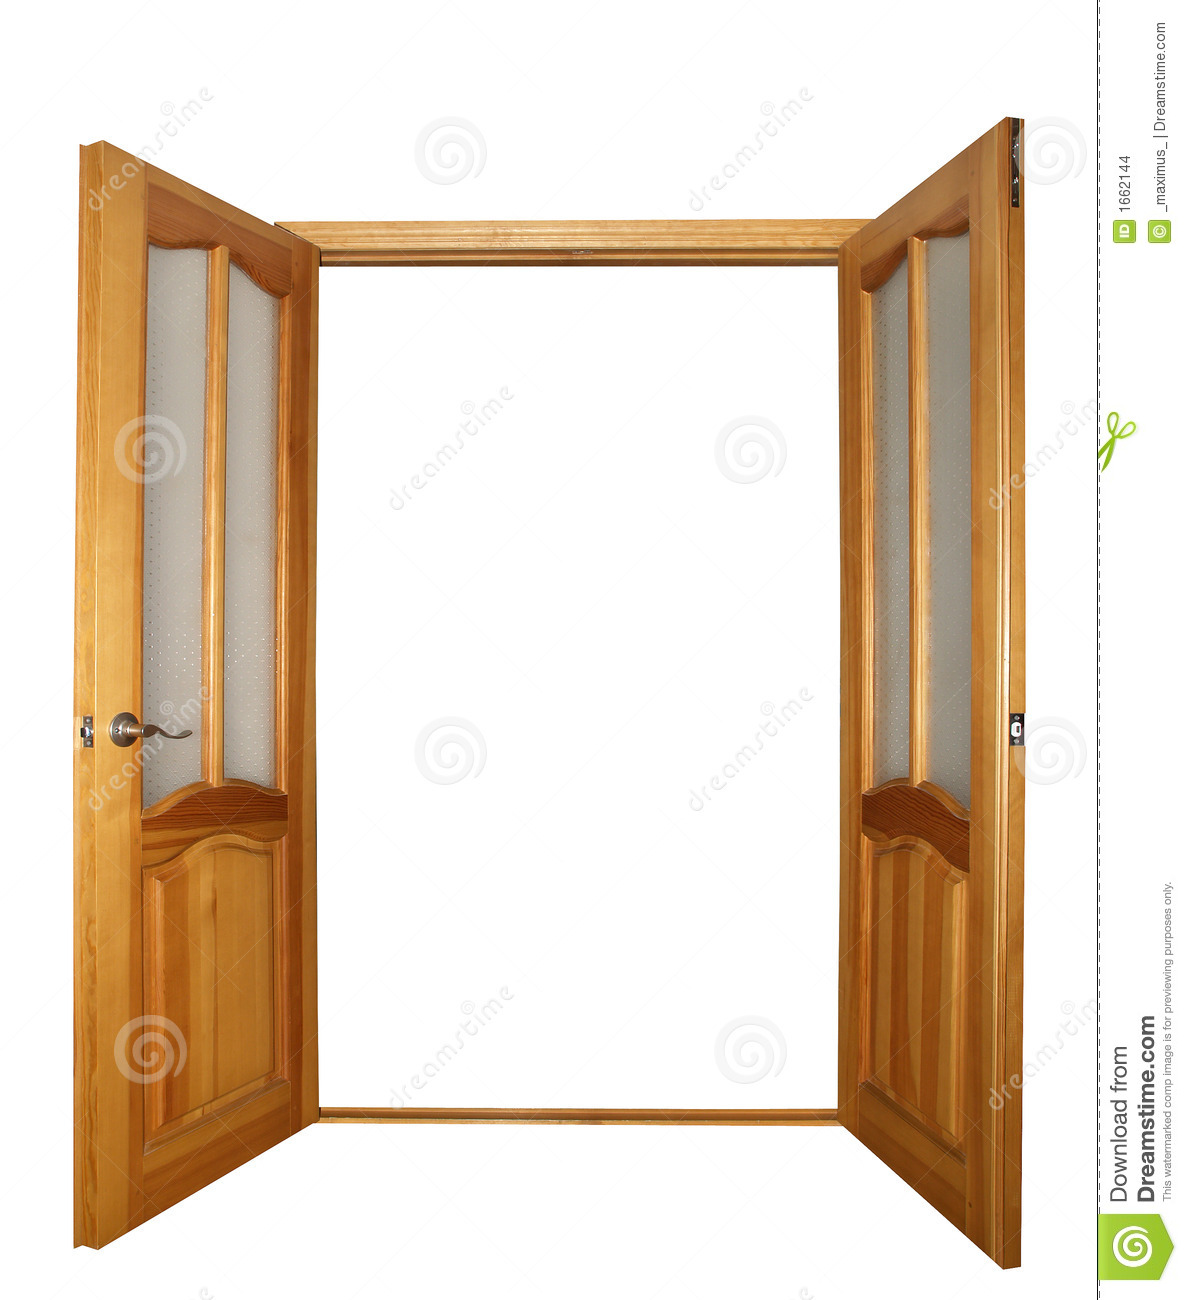 Brilliant Open Double Doors Clipart Dietplanreviewsinfo 2834346848 On Design O For Decorating Ideas